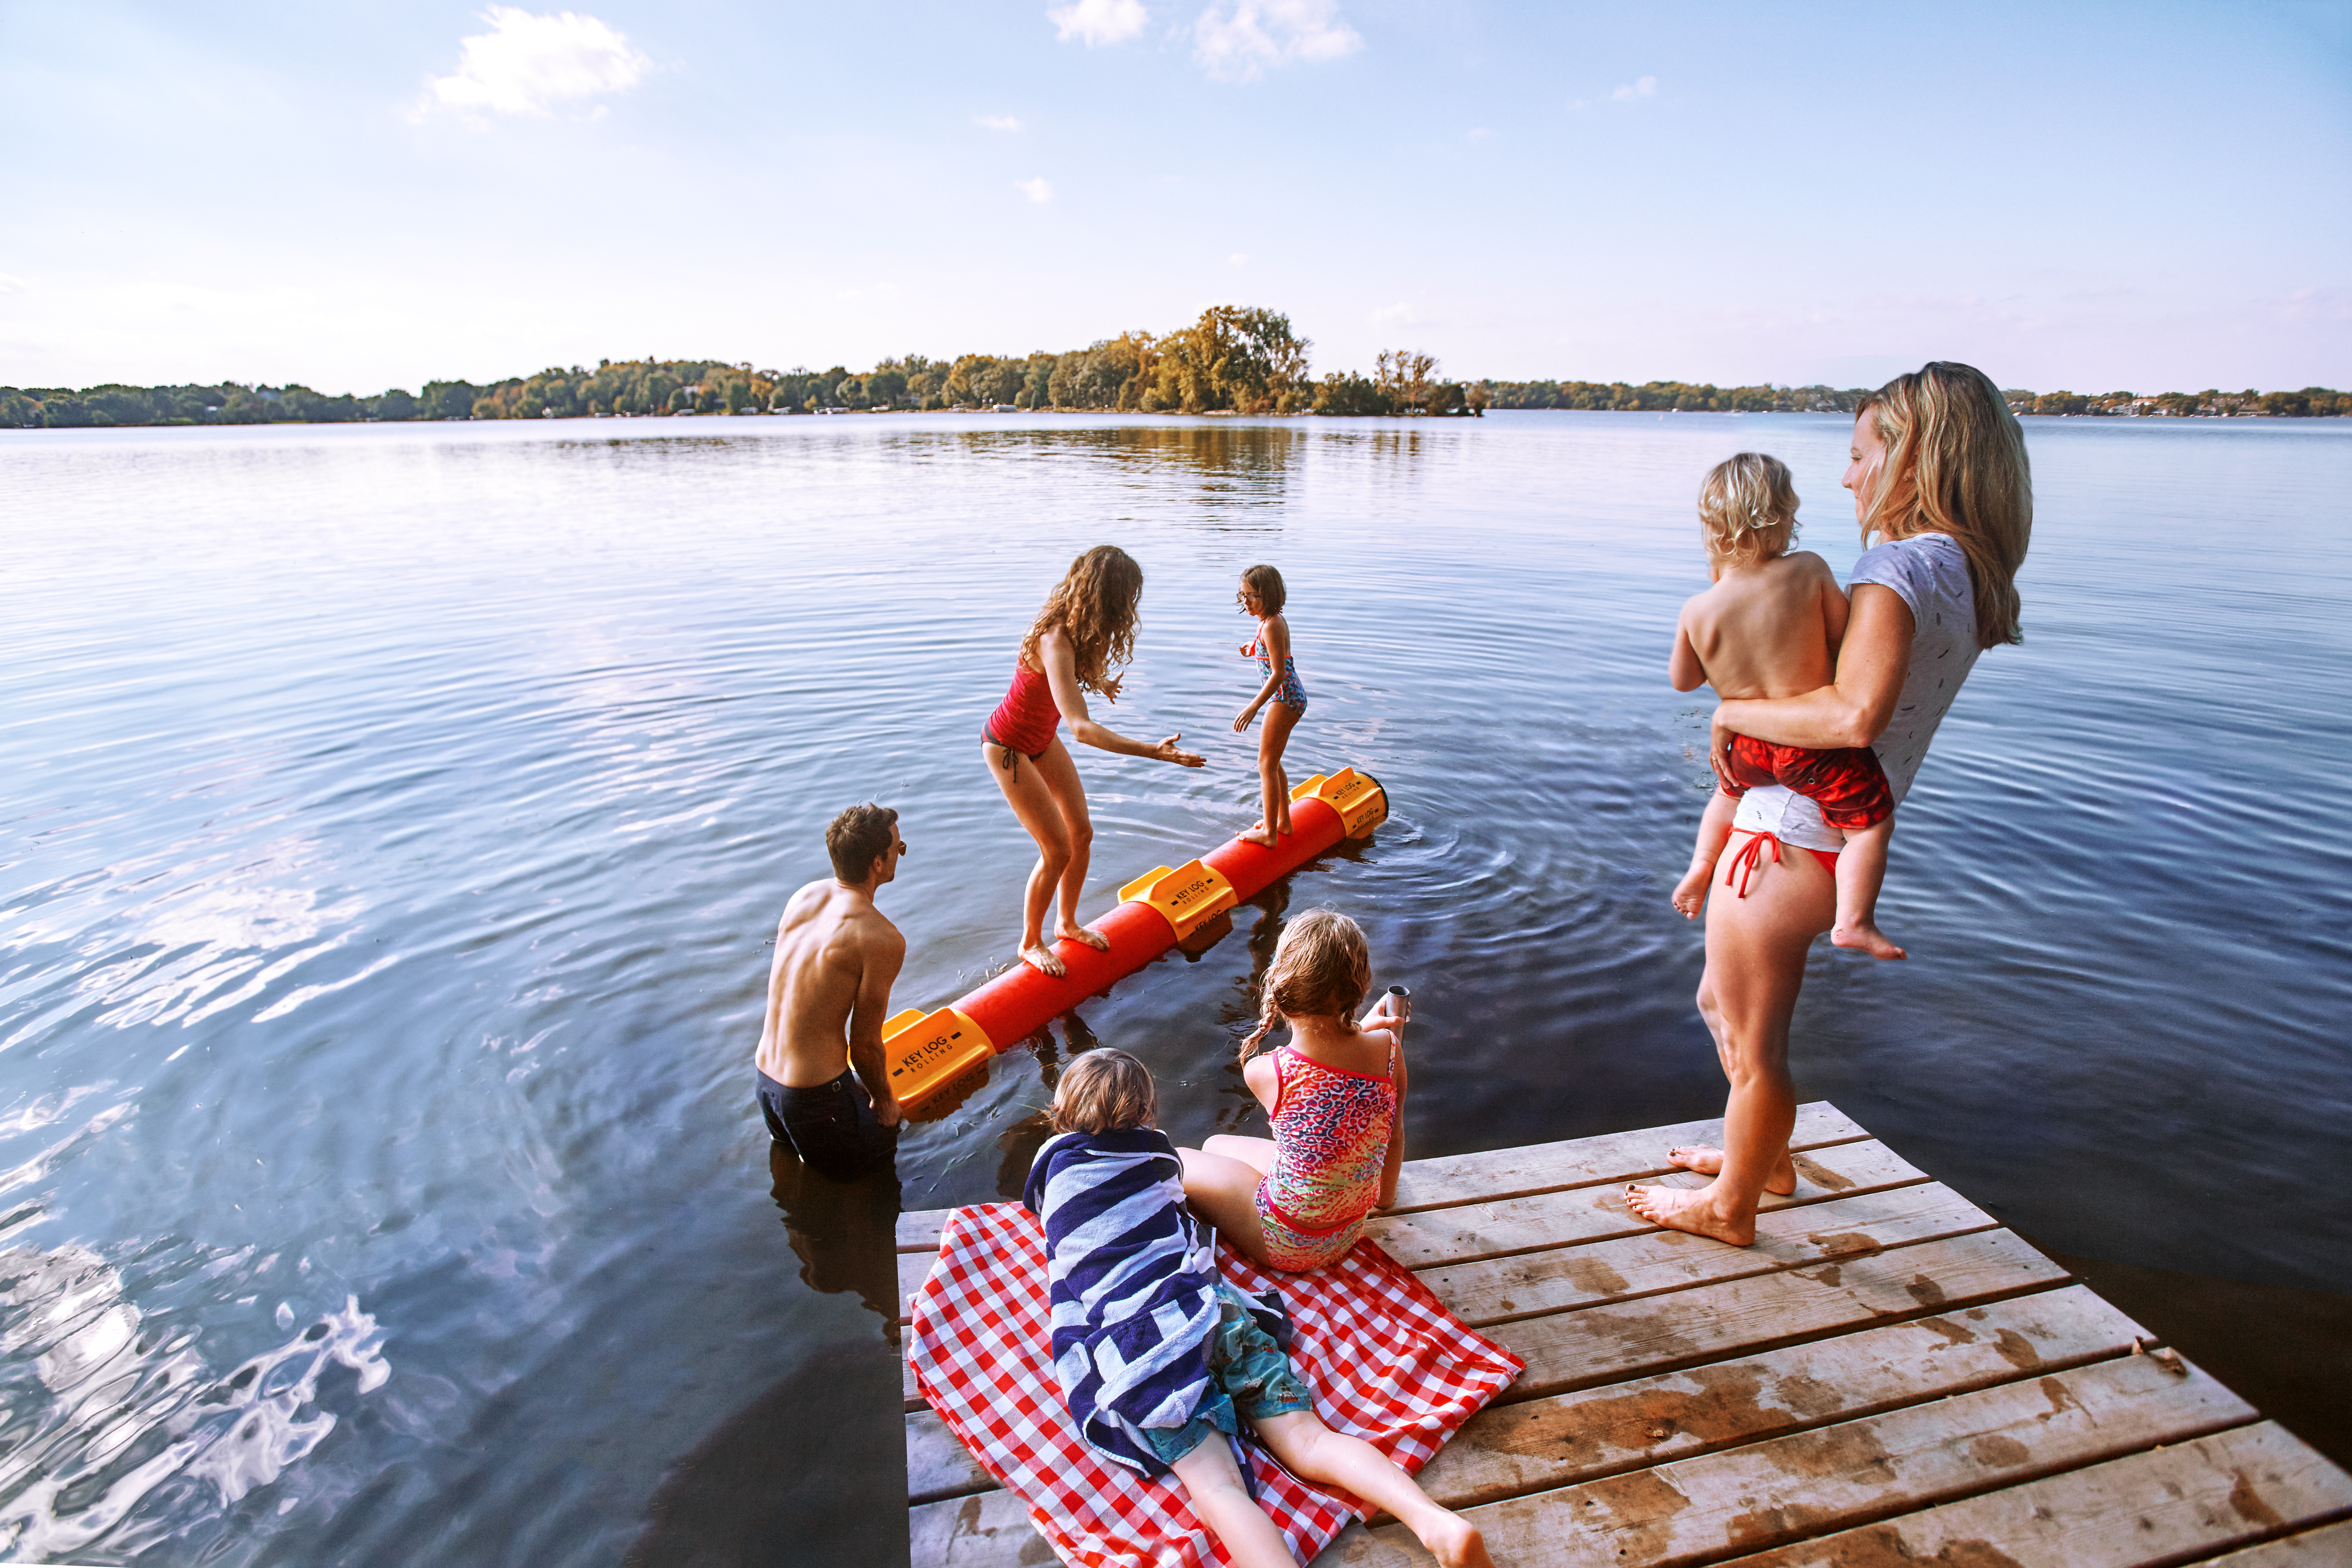 key-log-rolling-at-the-lake_21658171740_o